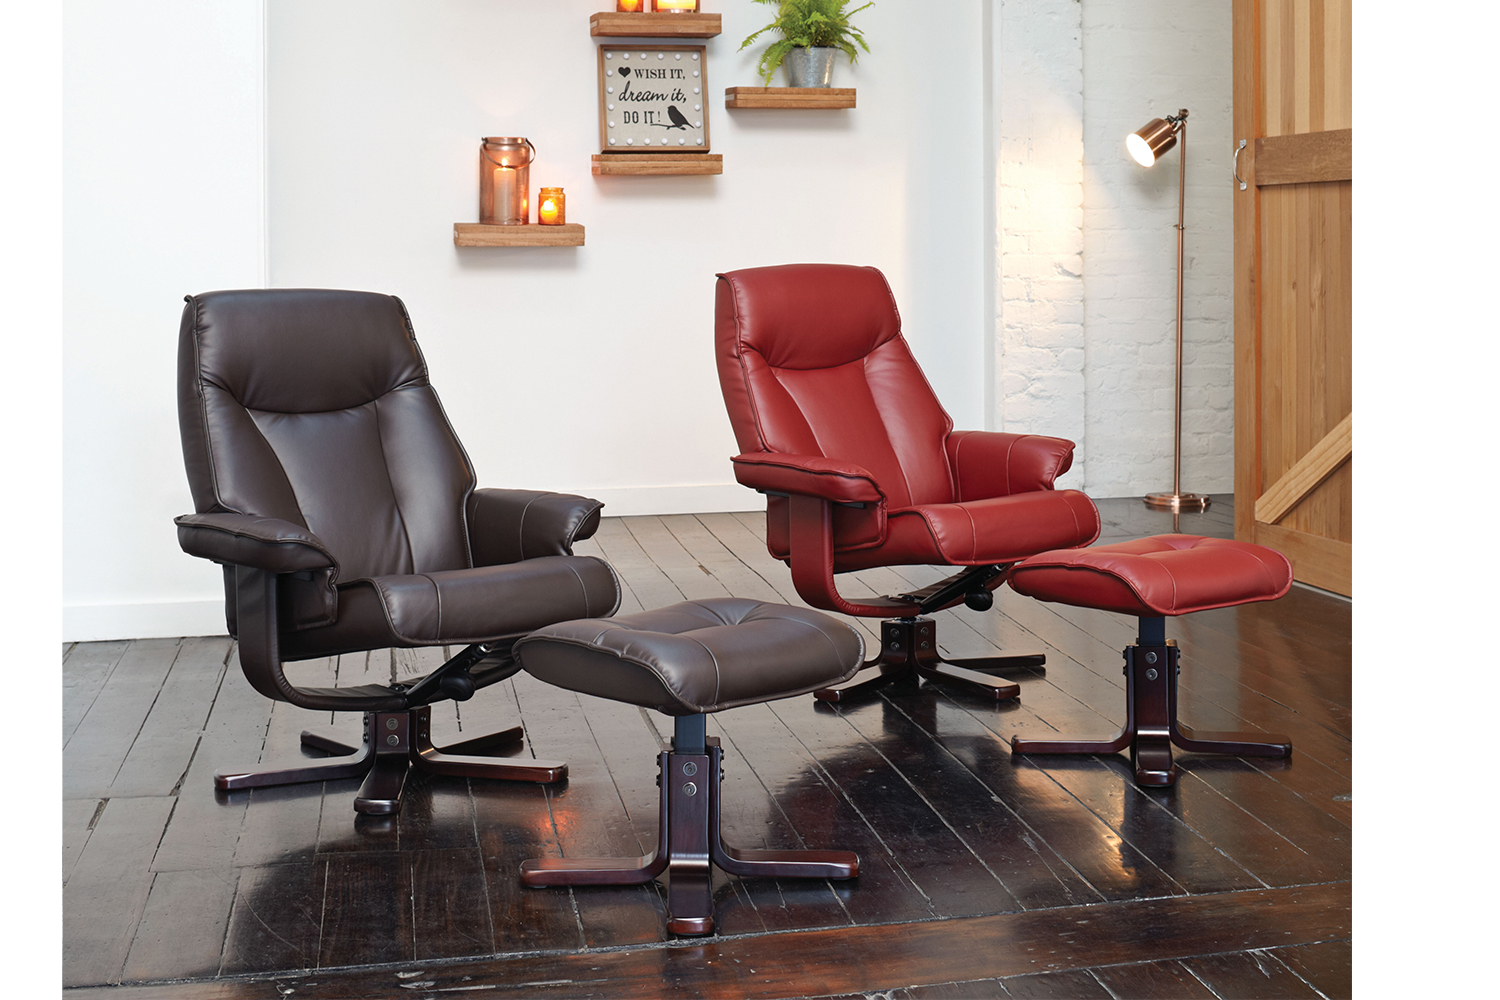 electric reclining chairs nz costco zero gravity chair zurich and footstool by debonaire furniture harvey